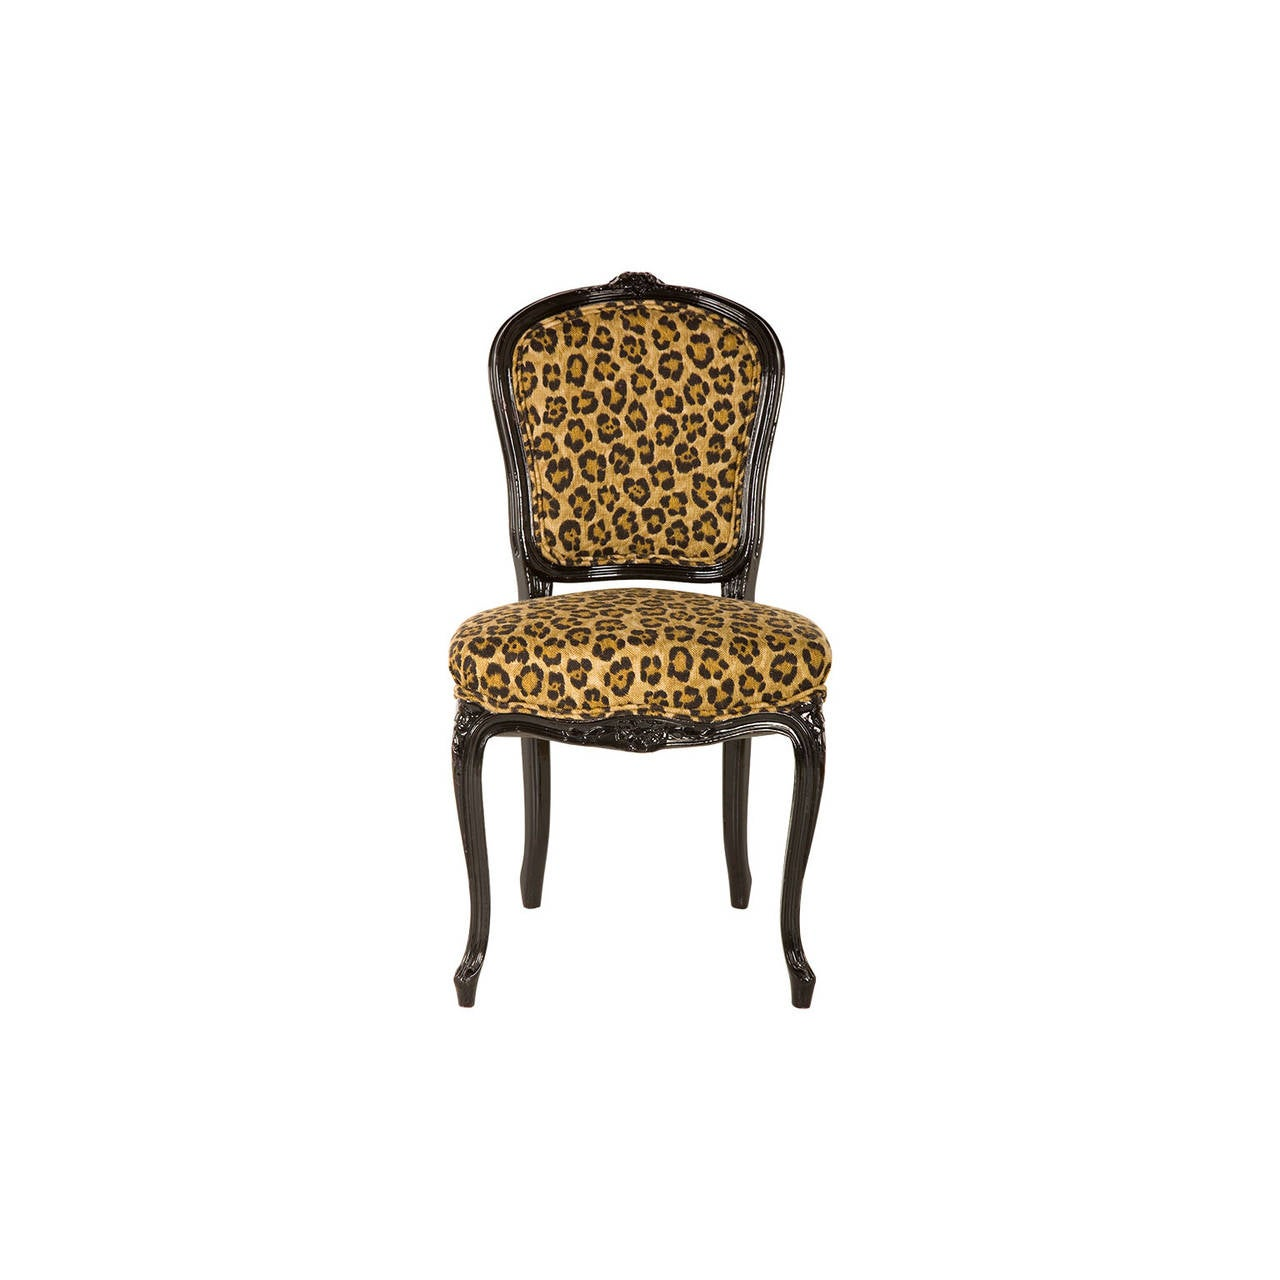 Best Animal Print Dining Room Chairs Gallery  : HG145106alt2l from rugoingmyway.us size 1280 x 1280 jpeg 77kB